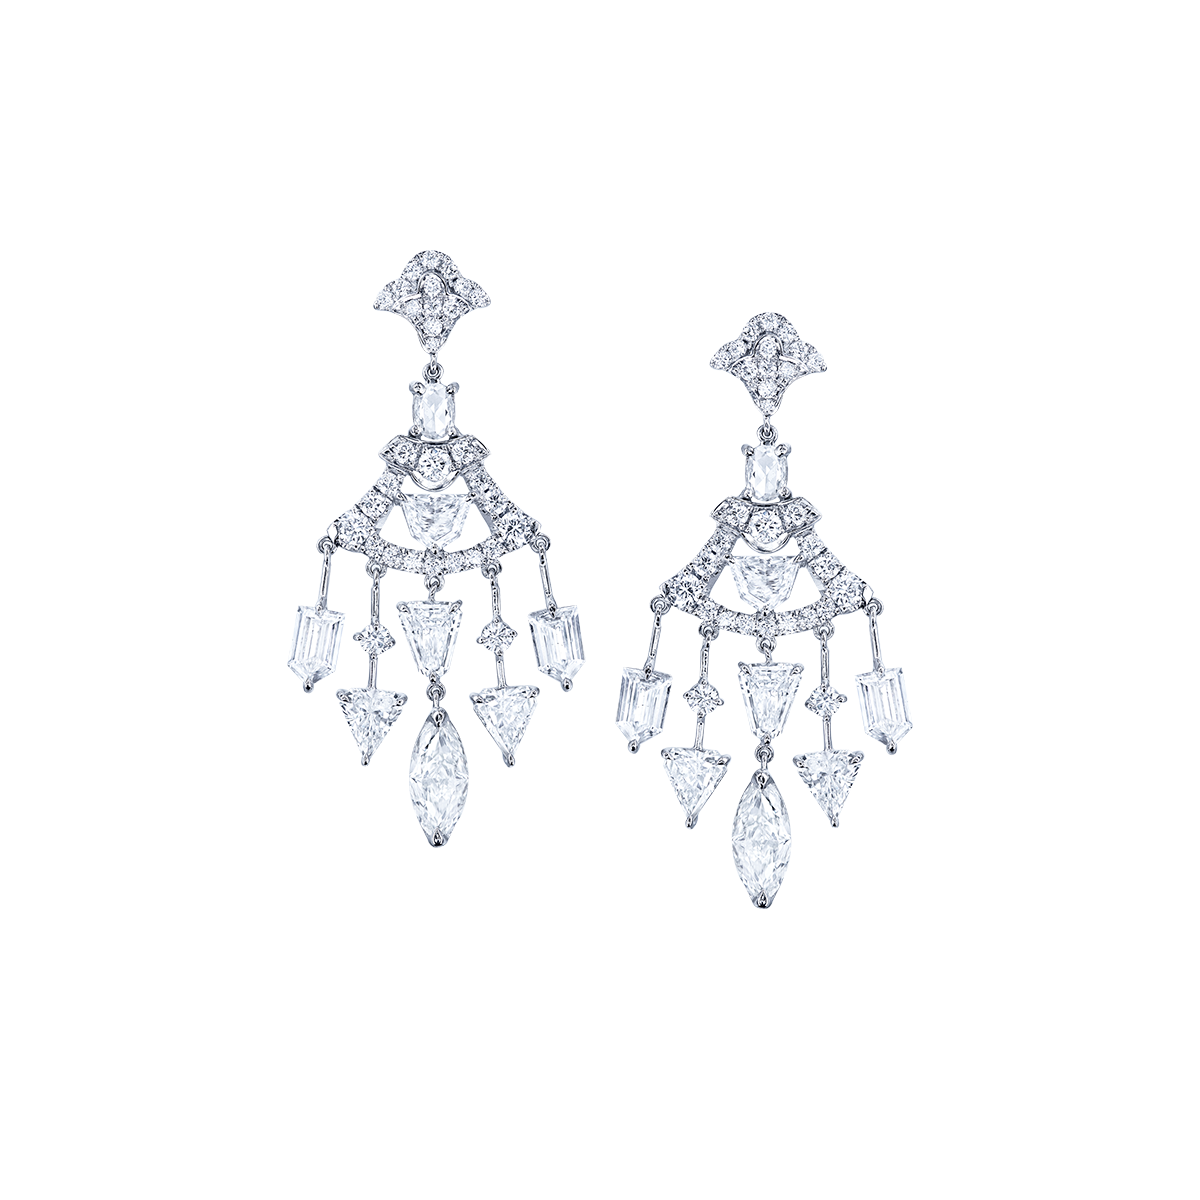 3.97克拉 白鑽耳環